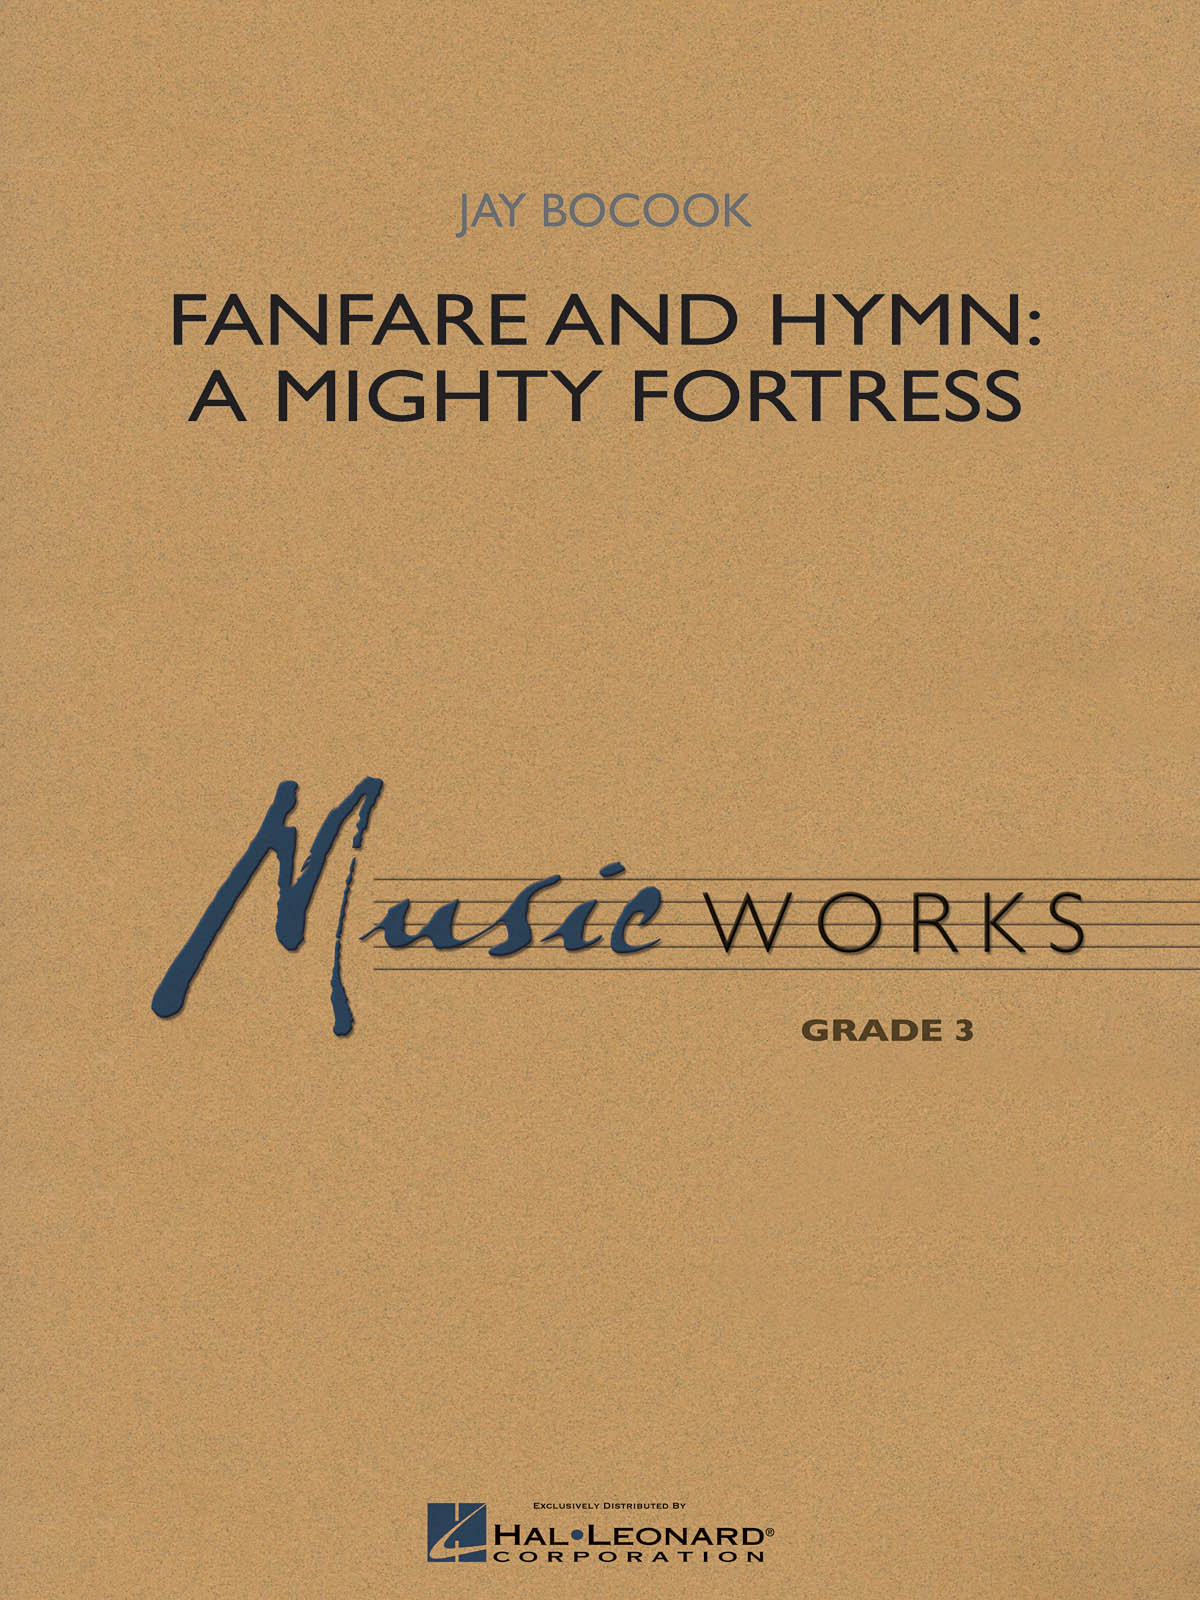 Jay Bocook: Fanfare and Hymn: A Mighty Fortress: Concert Band: Score & Parts